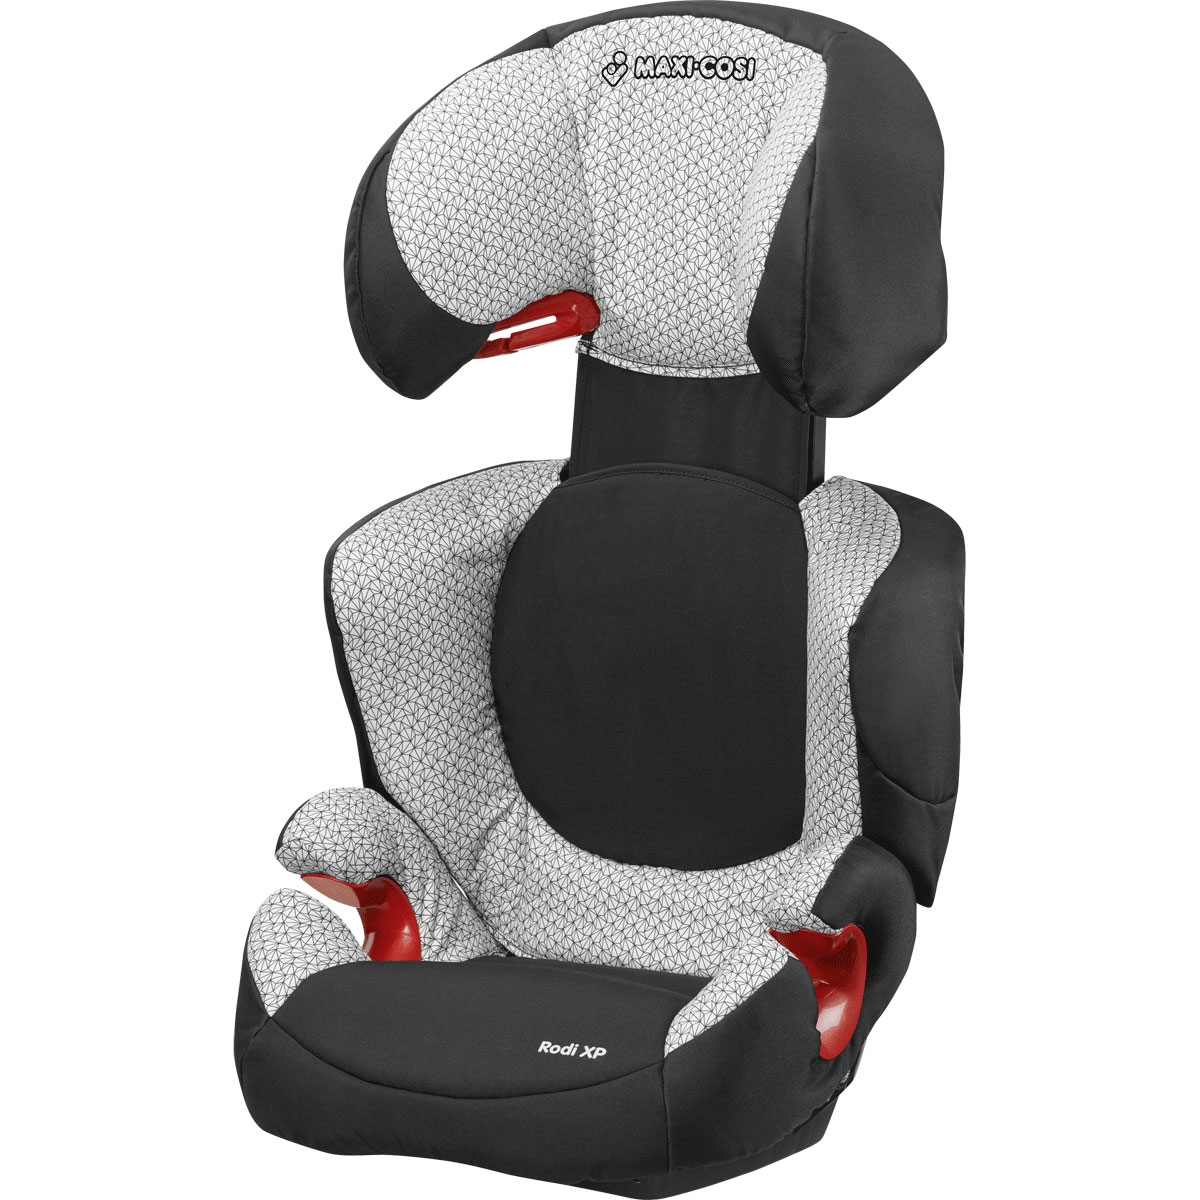 maxi cosi rodi xp 2 car seat choose colour ebay. Black Bedroom Furniture Sets. Home Design Ideas